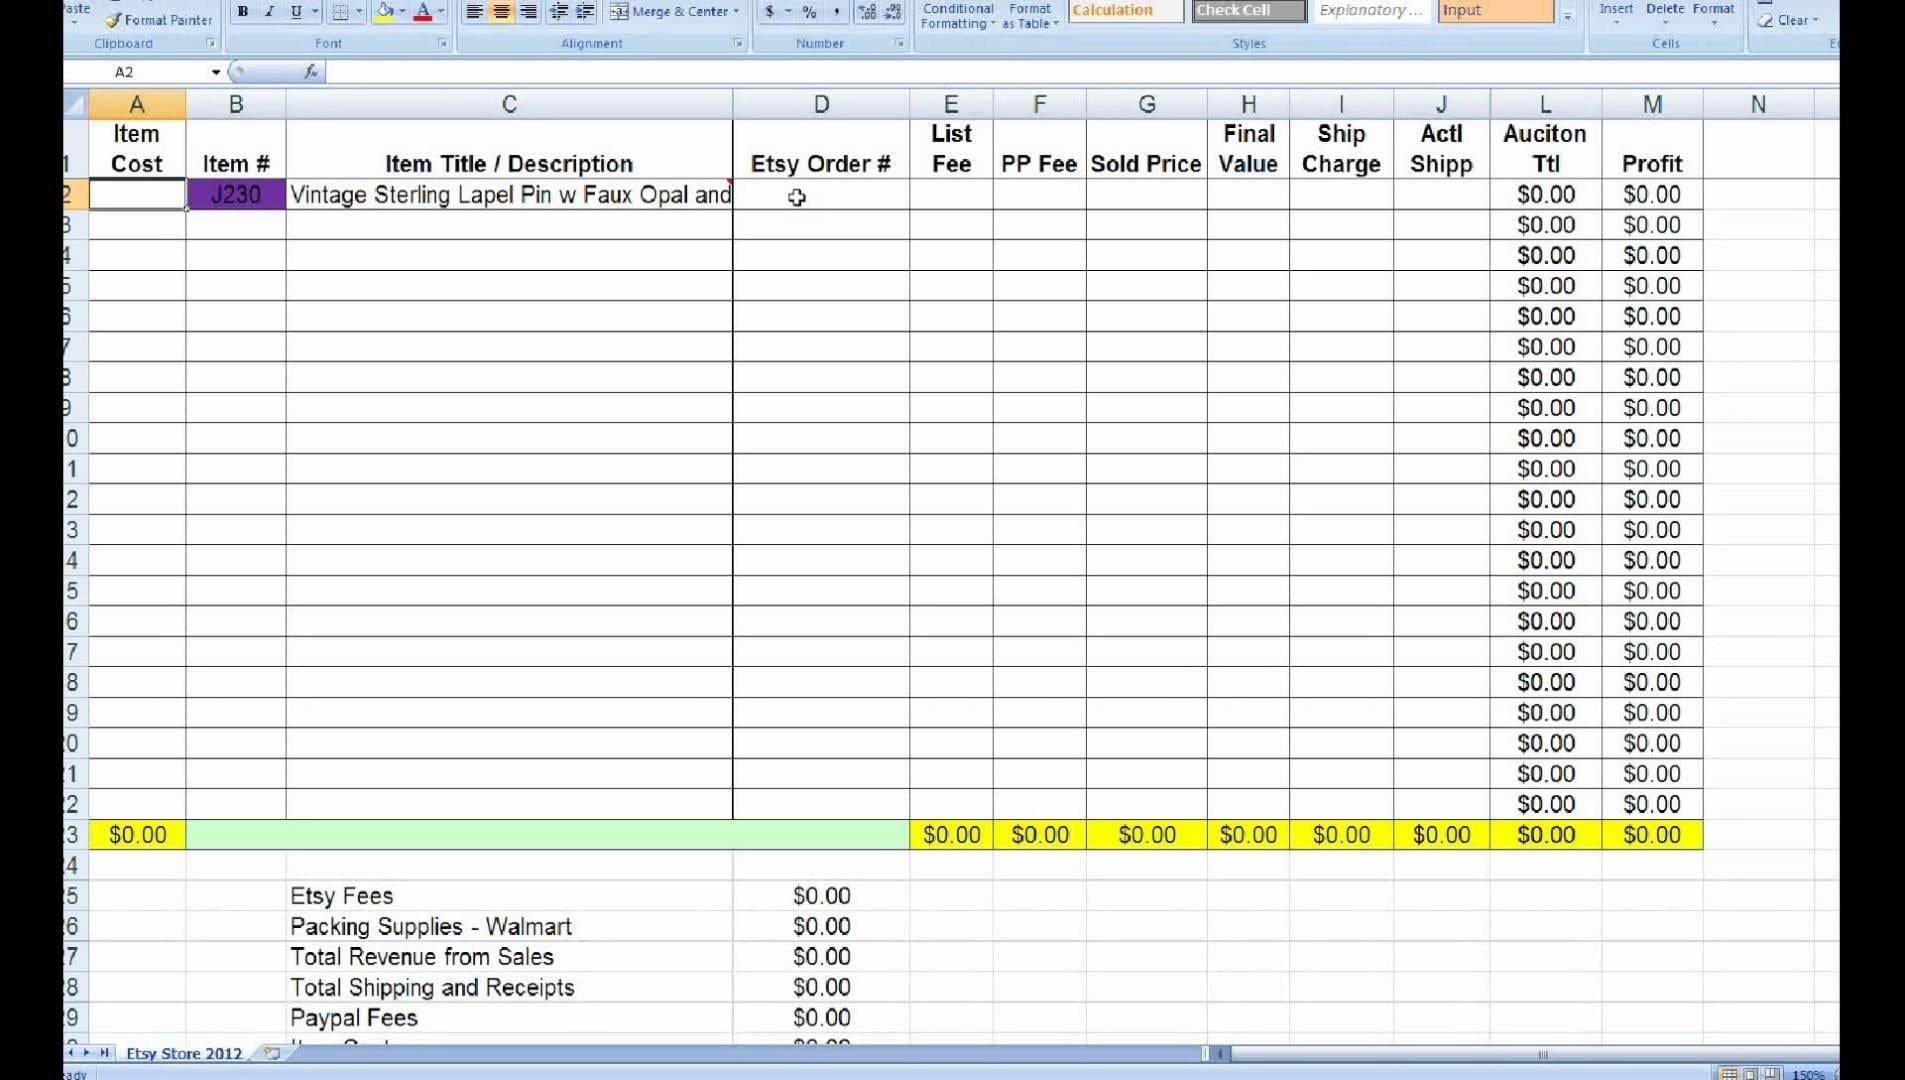 Inventory Management Sheet In Excel Inventory Tracking Spreadsheet Template Tracking Spreadsheet Spreadsheet Templates for Business Inventory Spreadshee Tracking Spreadsheet Spreadsheet Templates for Business Inventory Spreadshee How To Do Inventory In Excel And Simple Inventory Tracking Spreadsheet